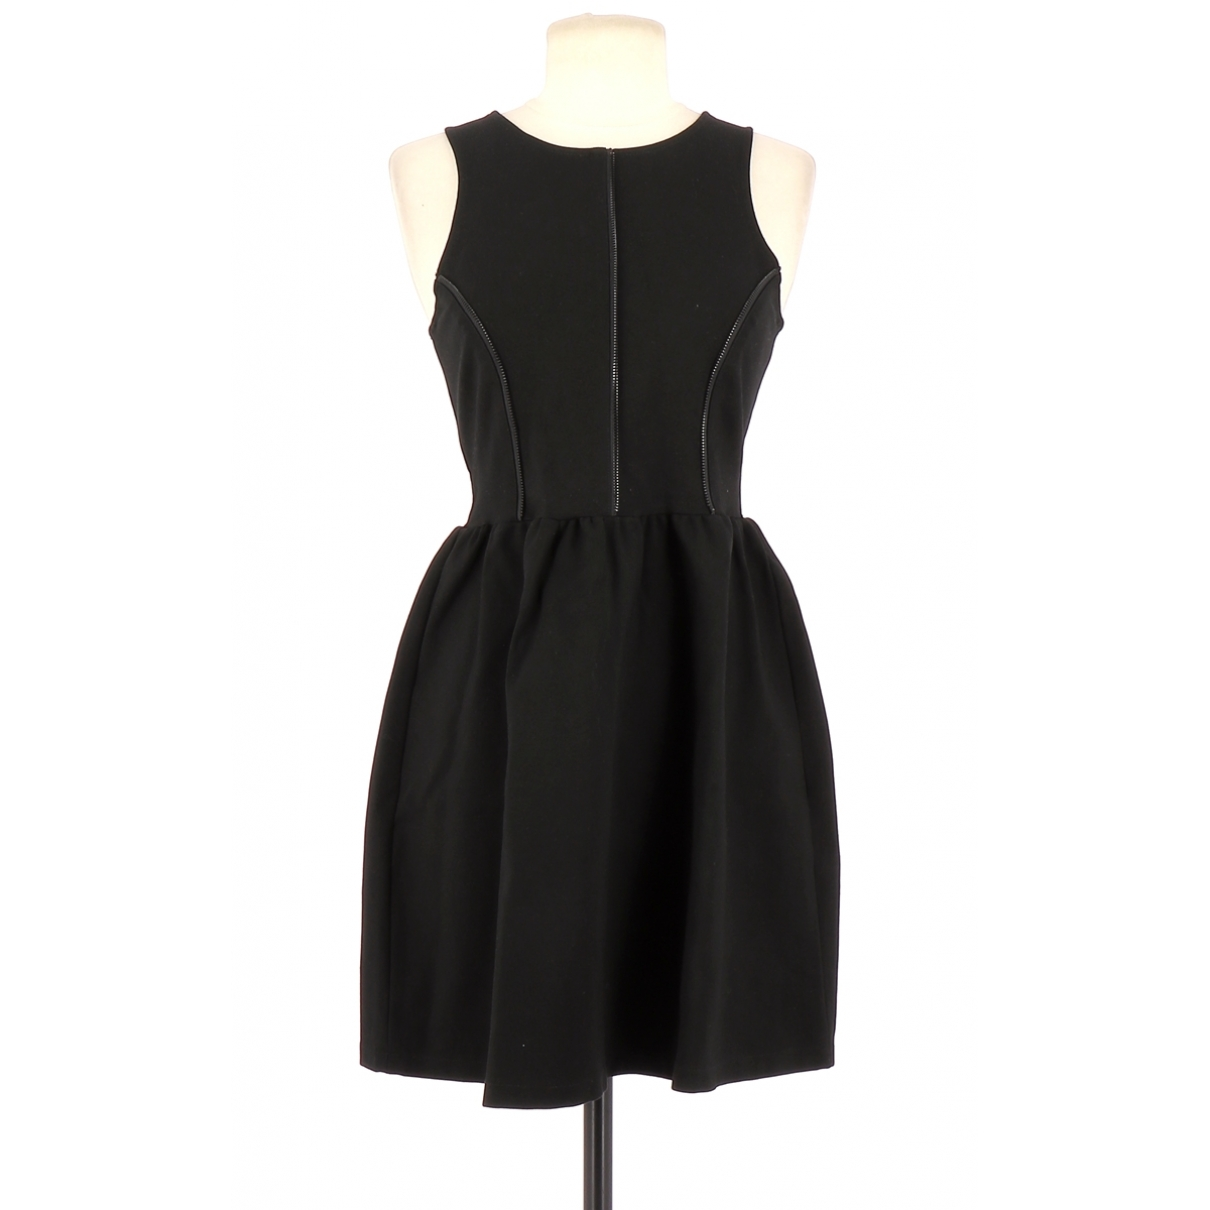 Bel Air \N Black dress for Women 36 FR